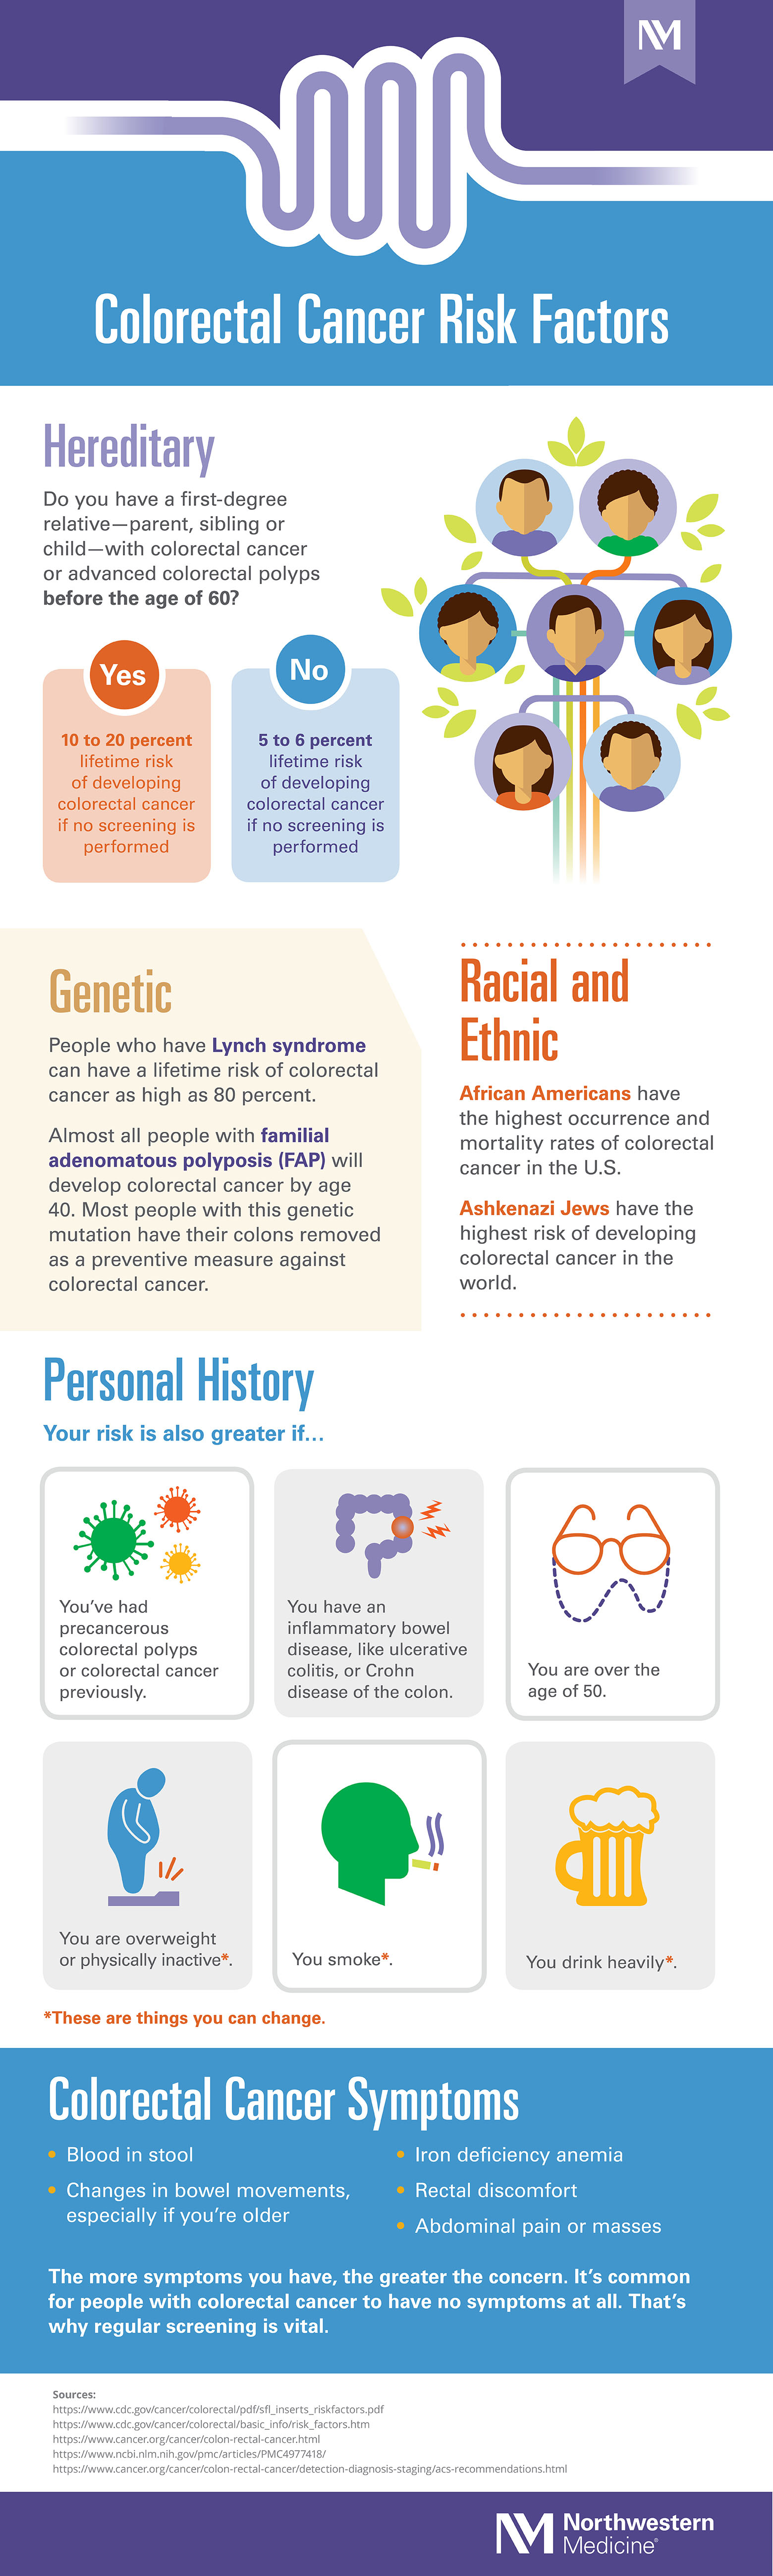 Risks And Signs Of Colorectal Cancer Infographic Northwestern Medicine